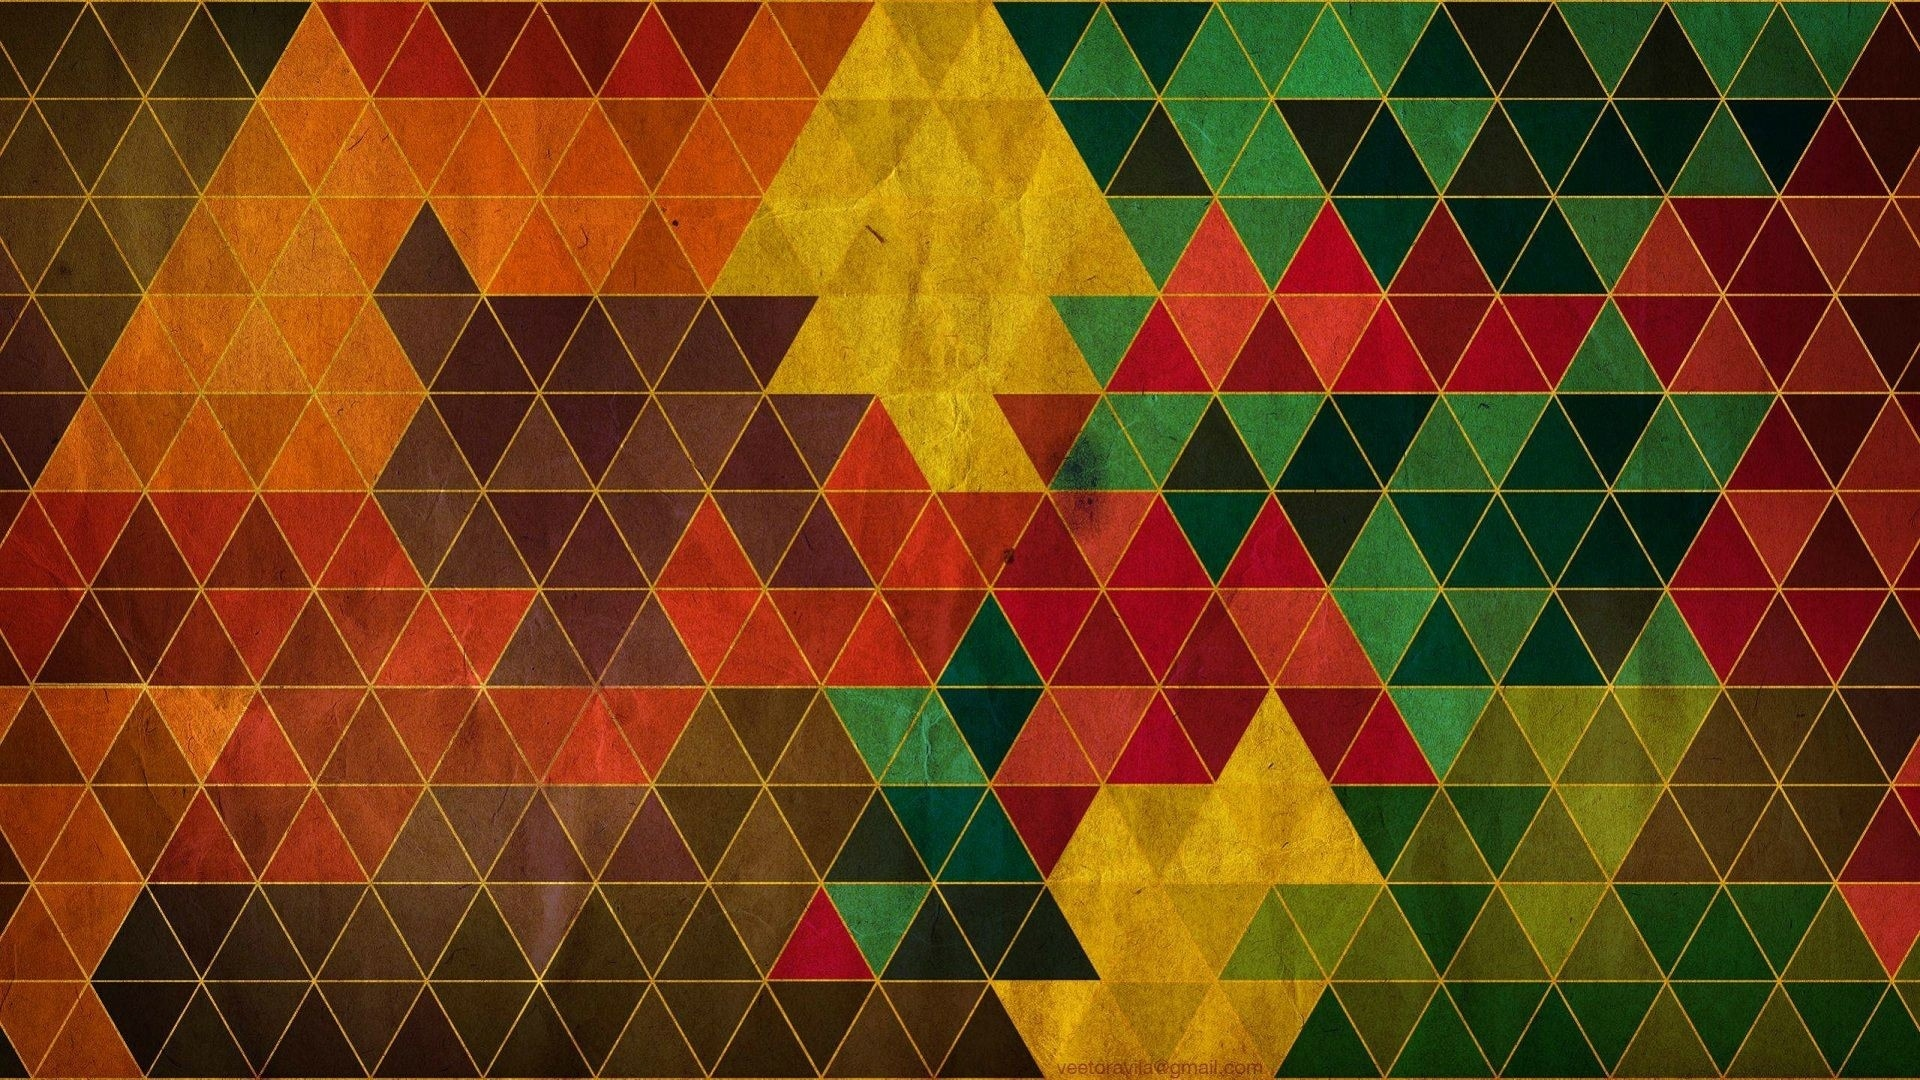 Shapes Triangle wallpaper for computer